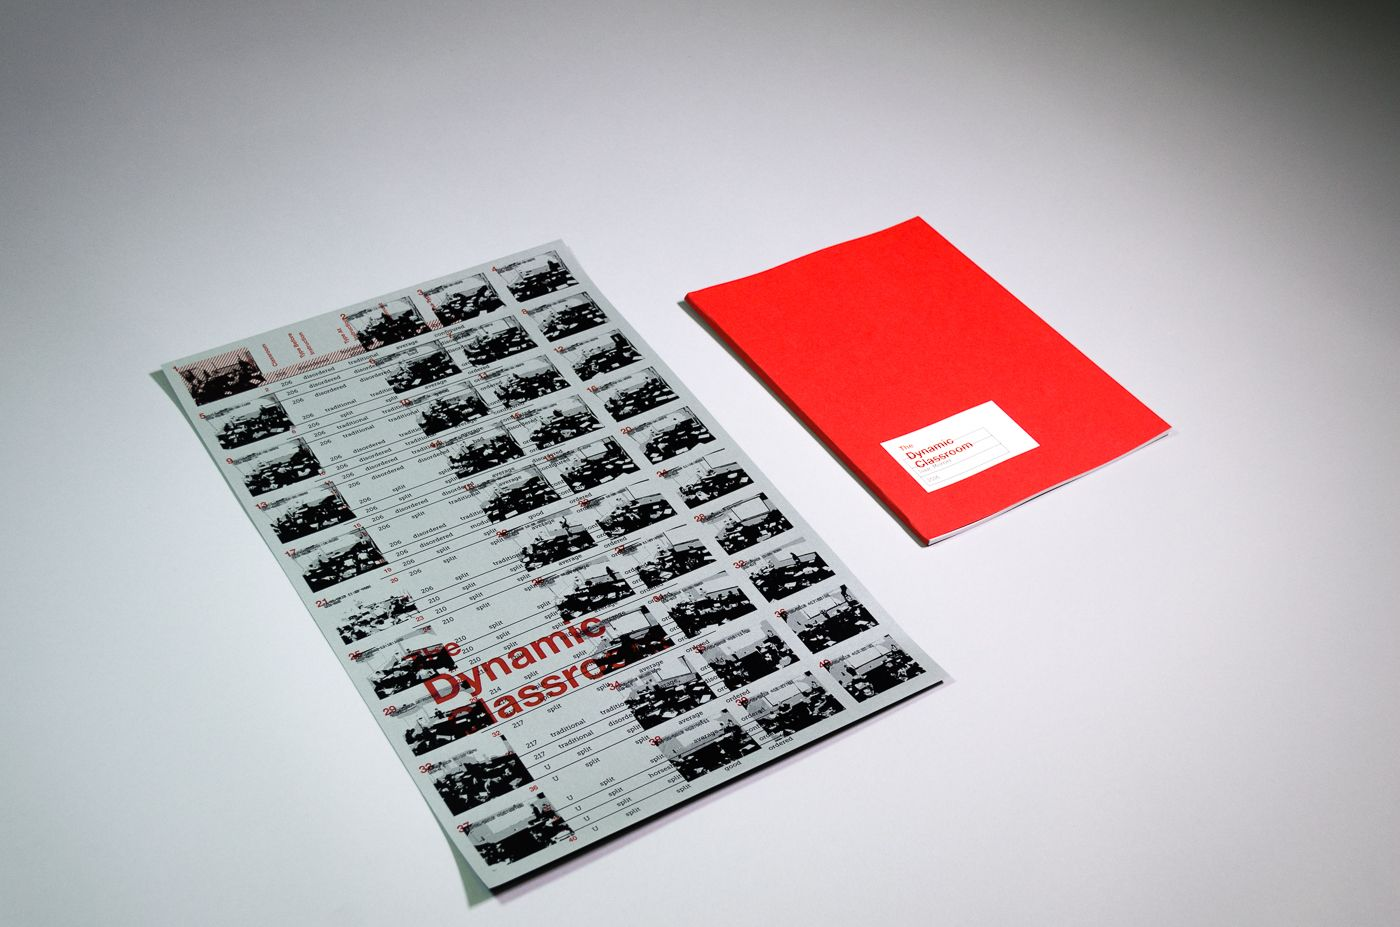 Poster and book cover